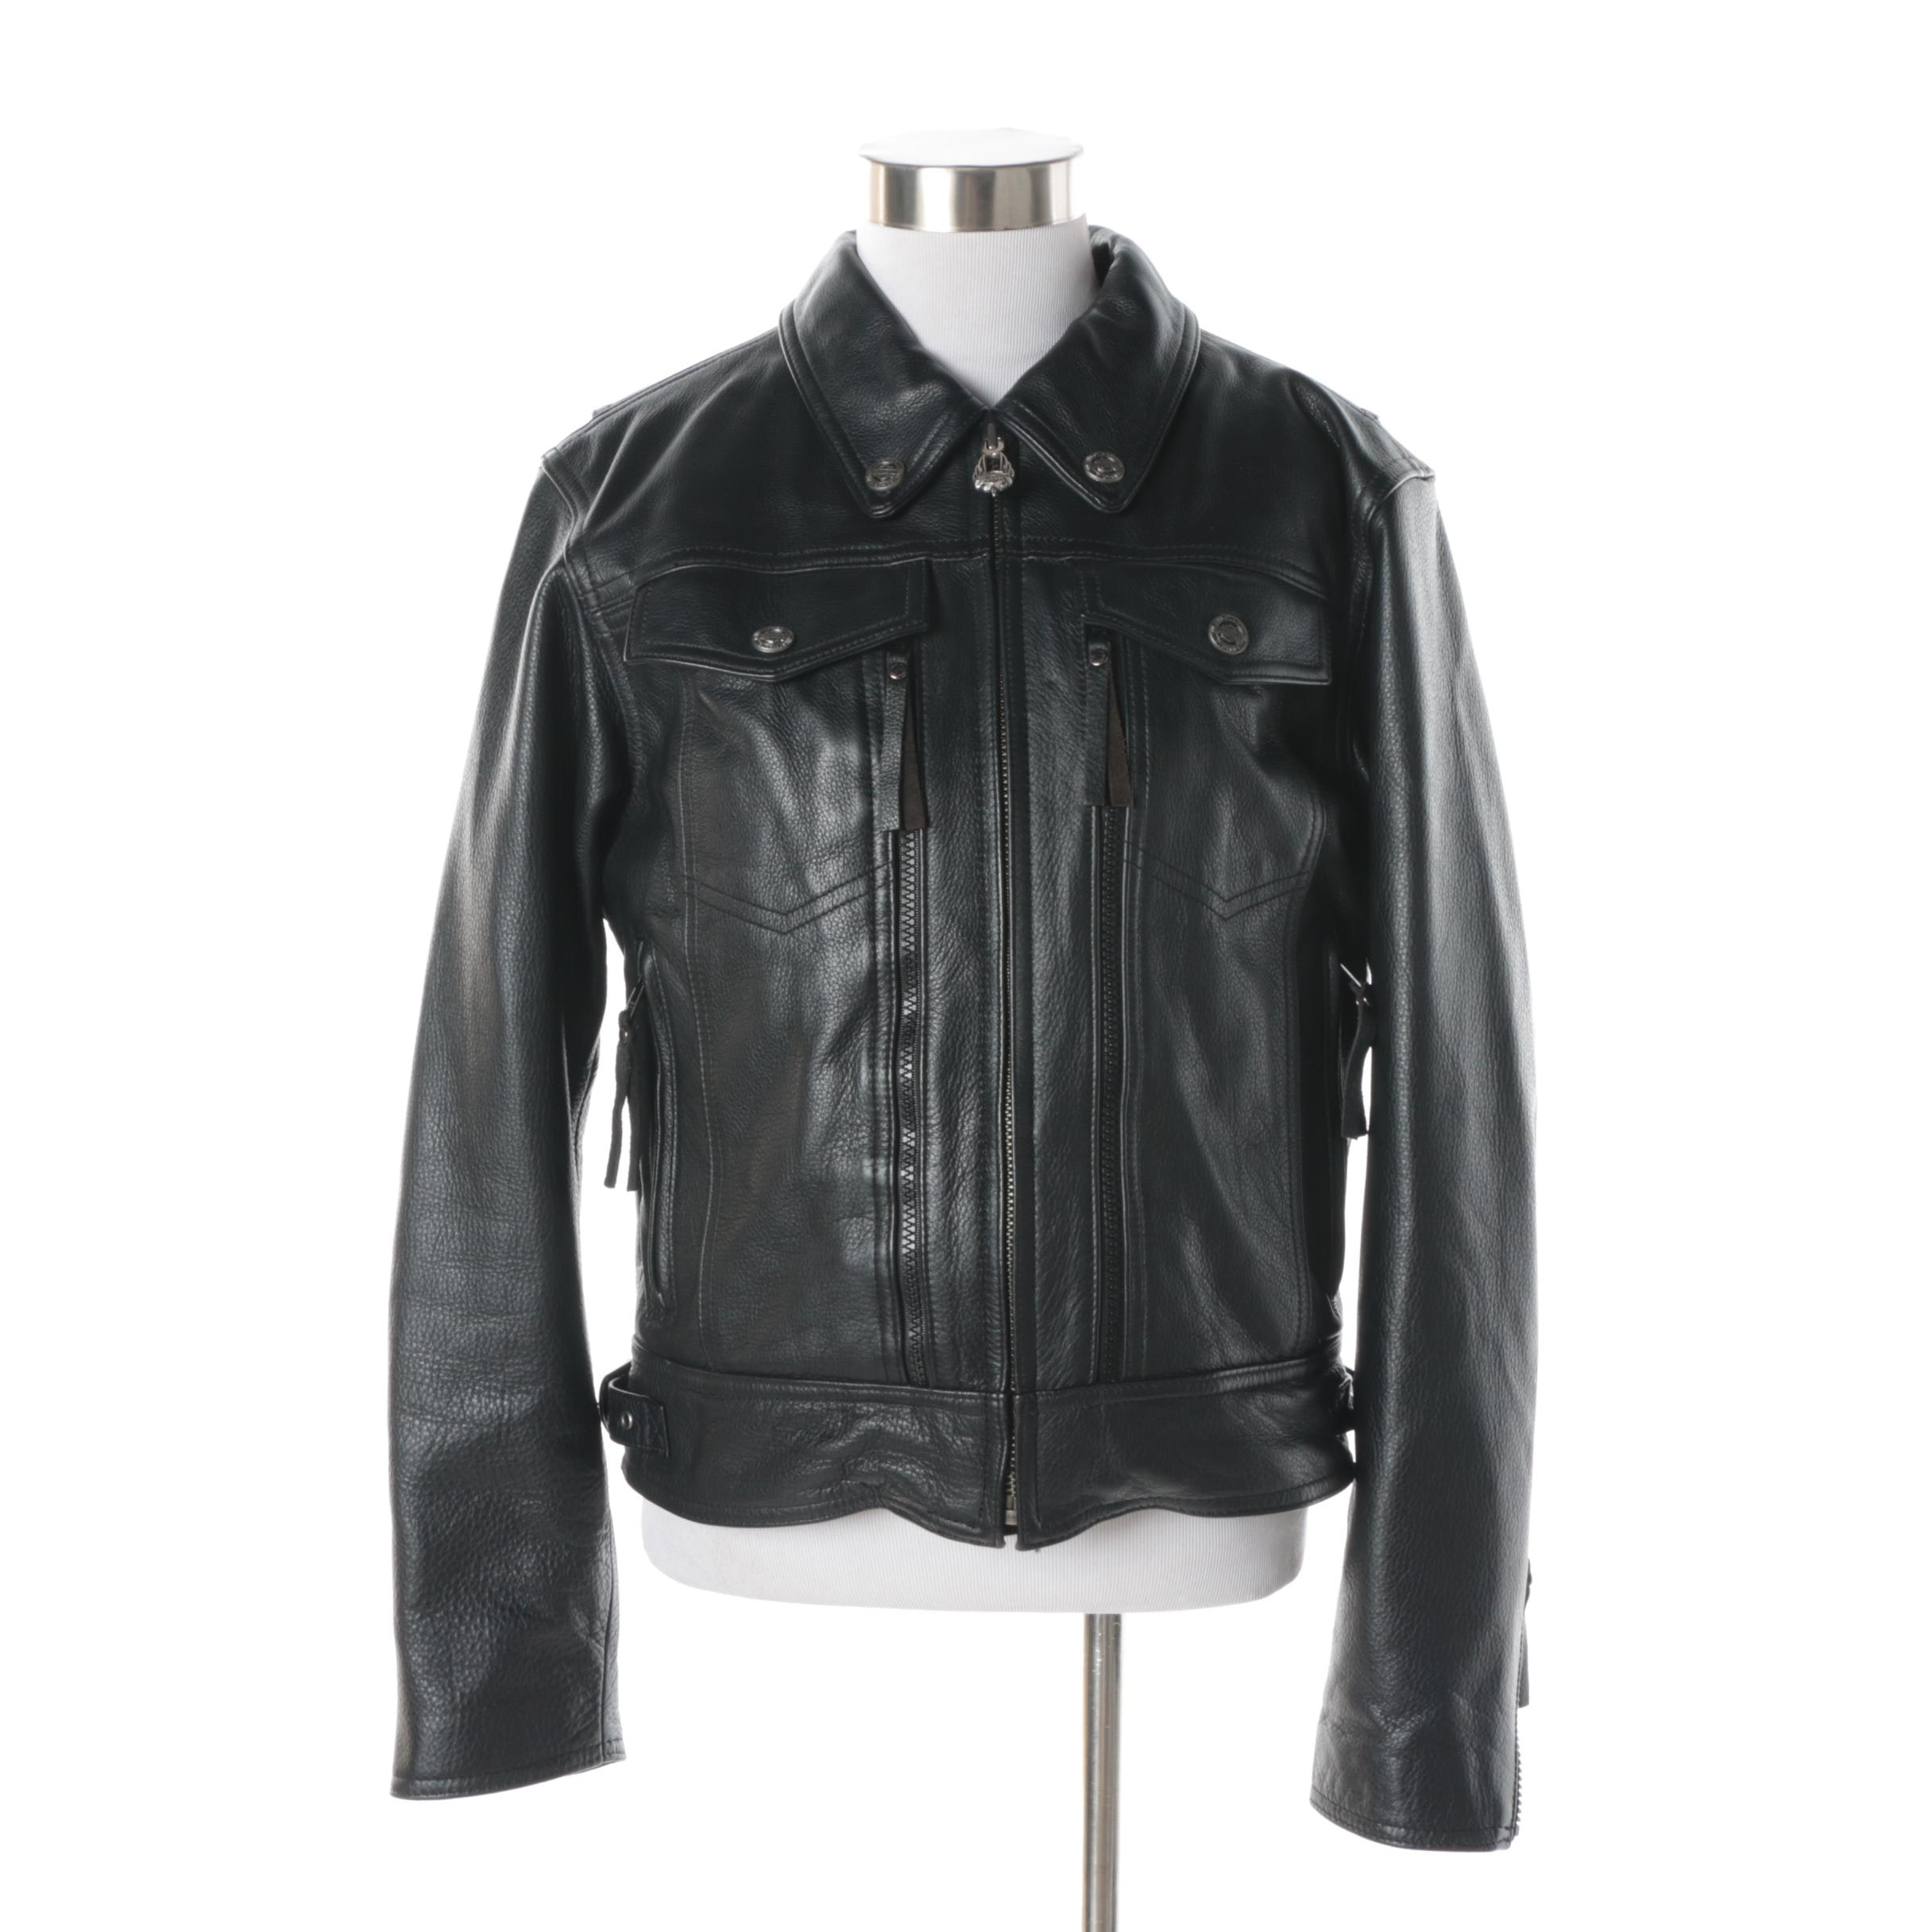 Women's Harley-Davidson Black Leather Motorcycle Jacket